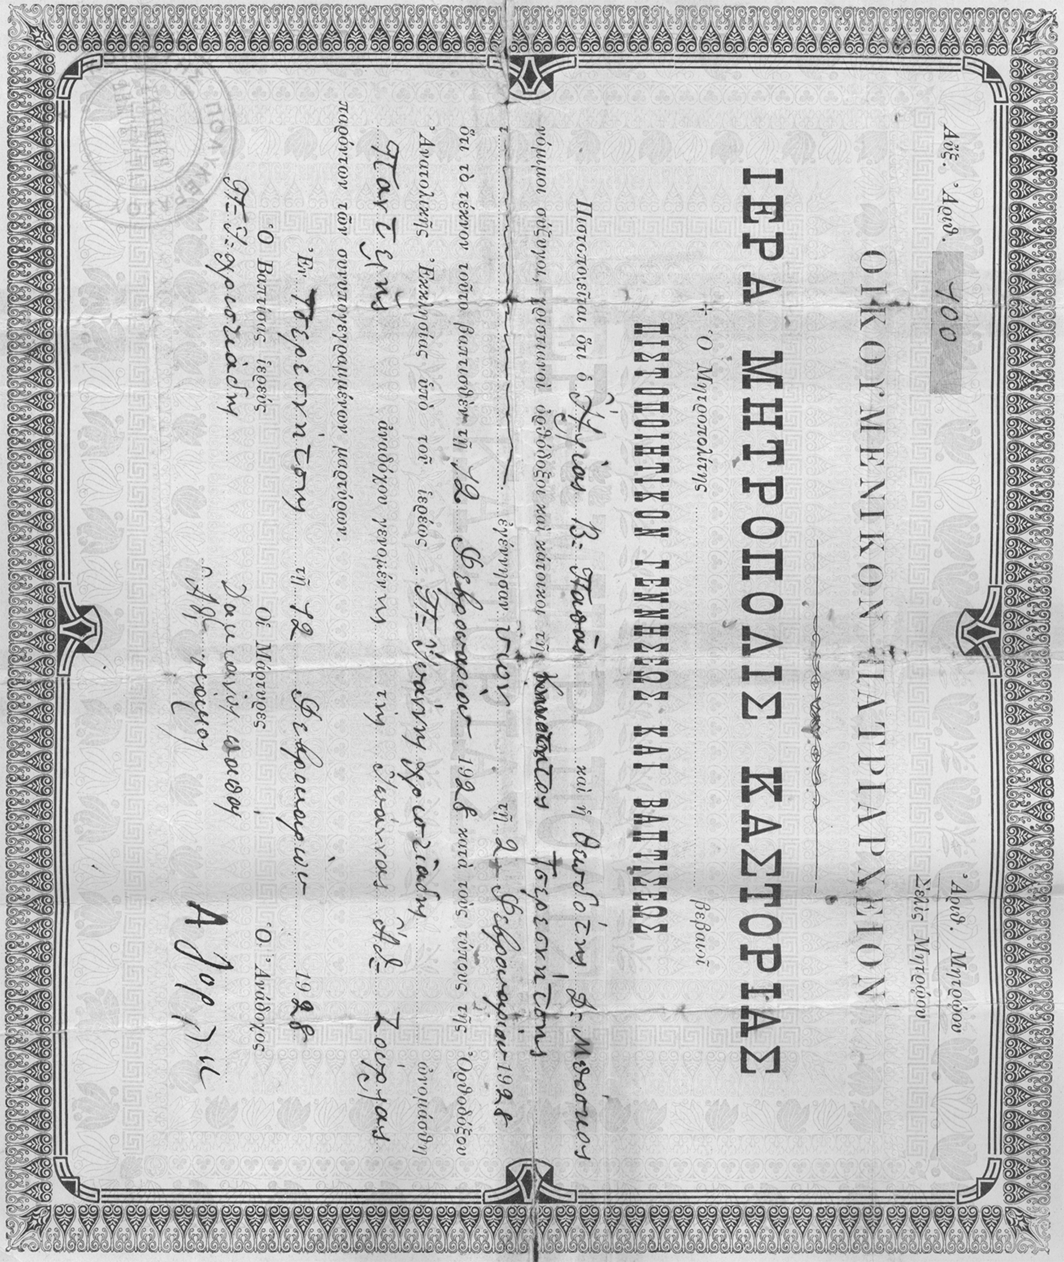 Certificate of Birth and Baptism (Left Click to View Original)